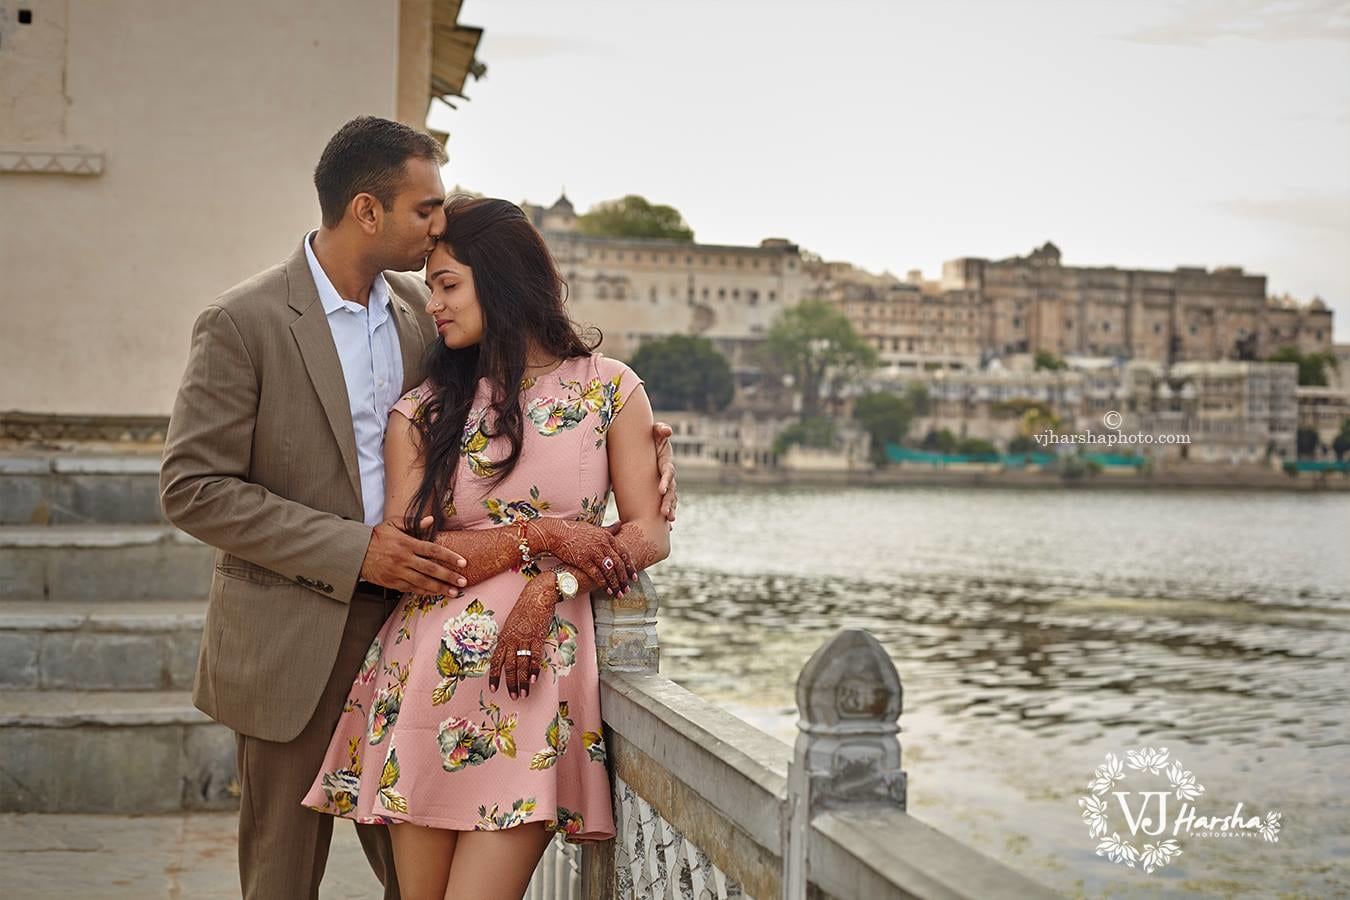 A Romantic Moment Captured Well by Vjharsha Photography Wedding-photography | Weddings Photos & Ideas